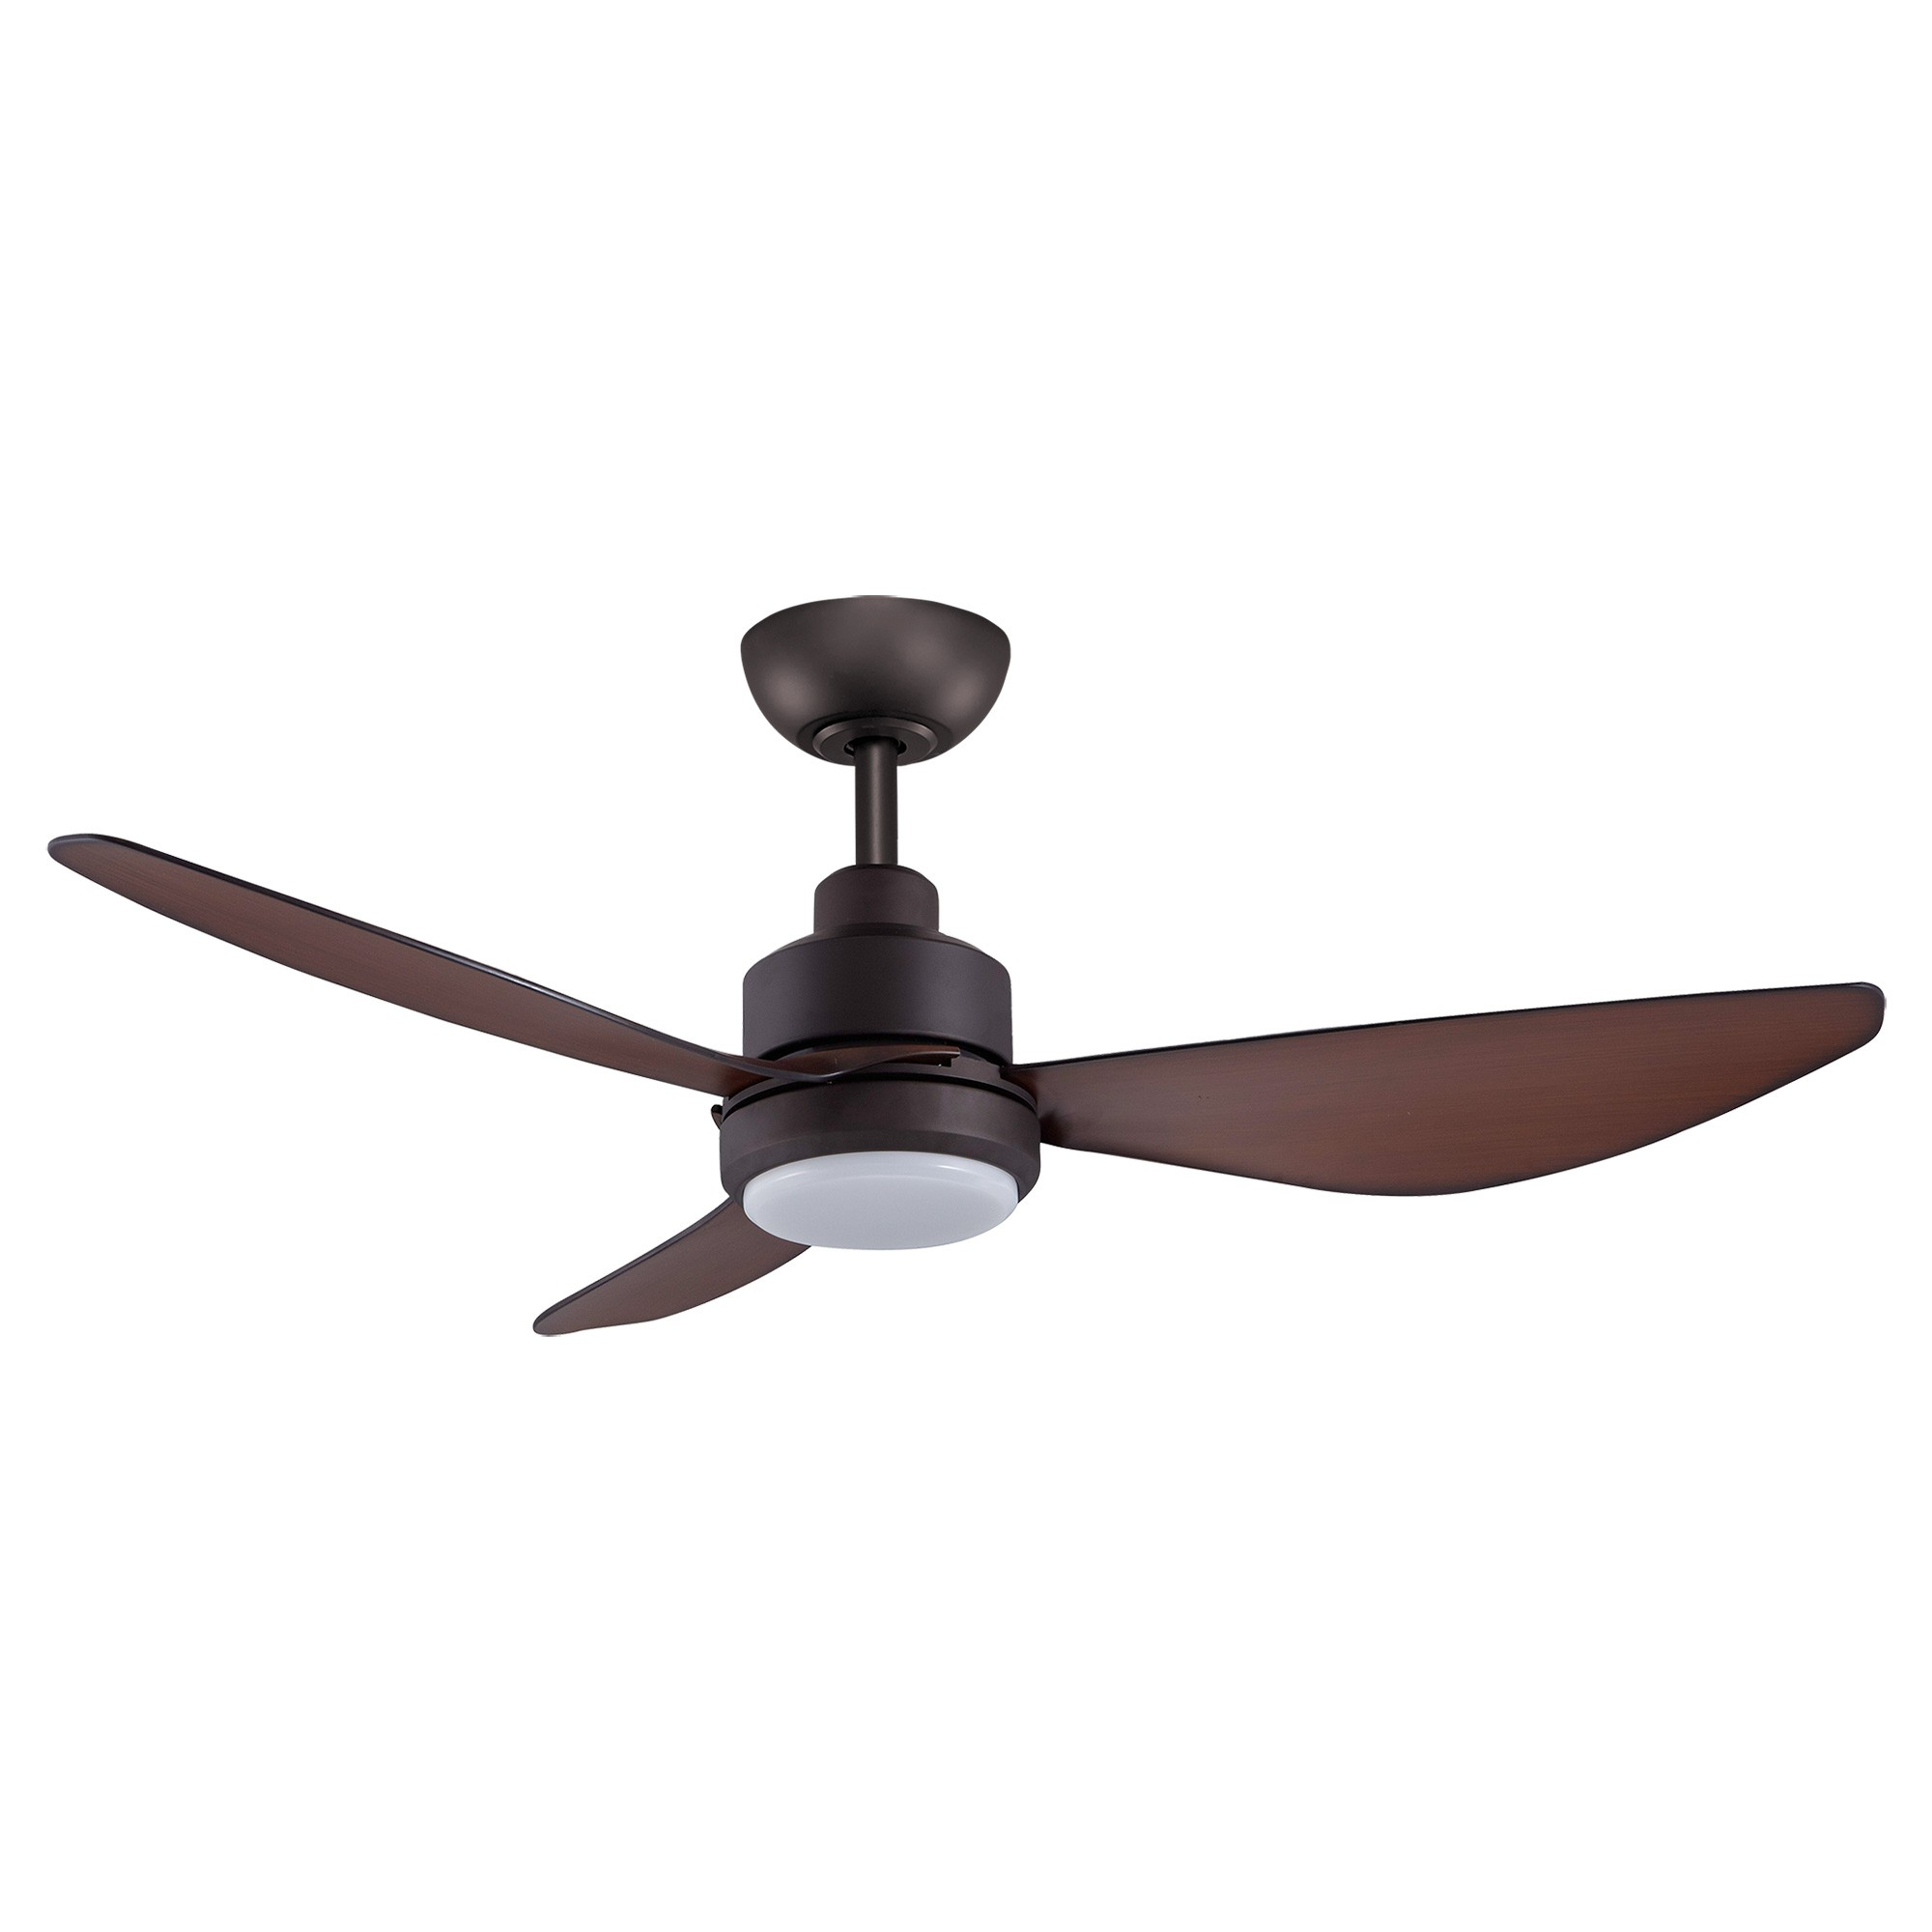 Threesixty Trinity Commercial Grade DC Ceiling Fan with LED Light, 122cm/48